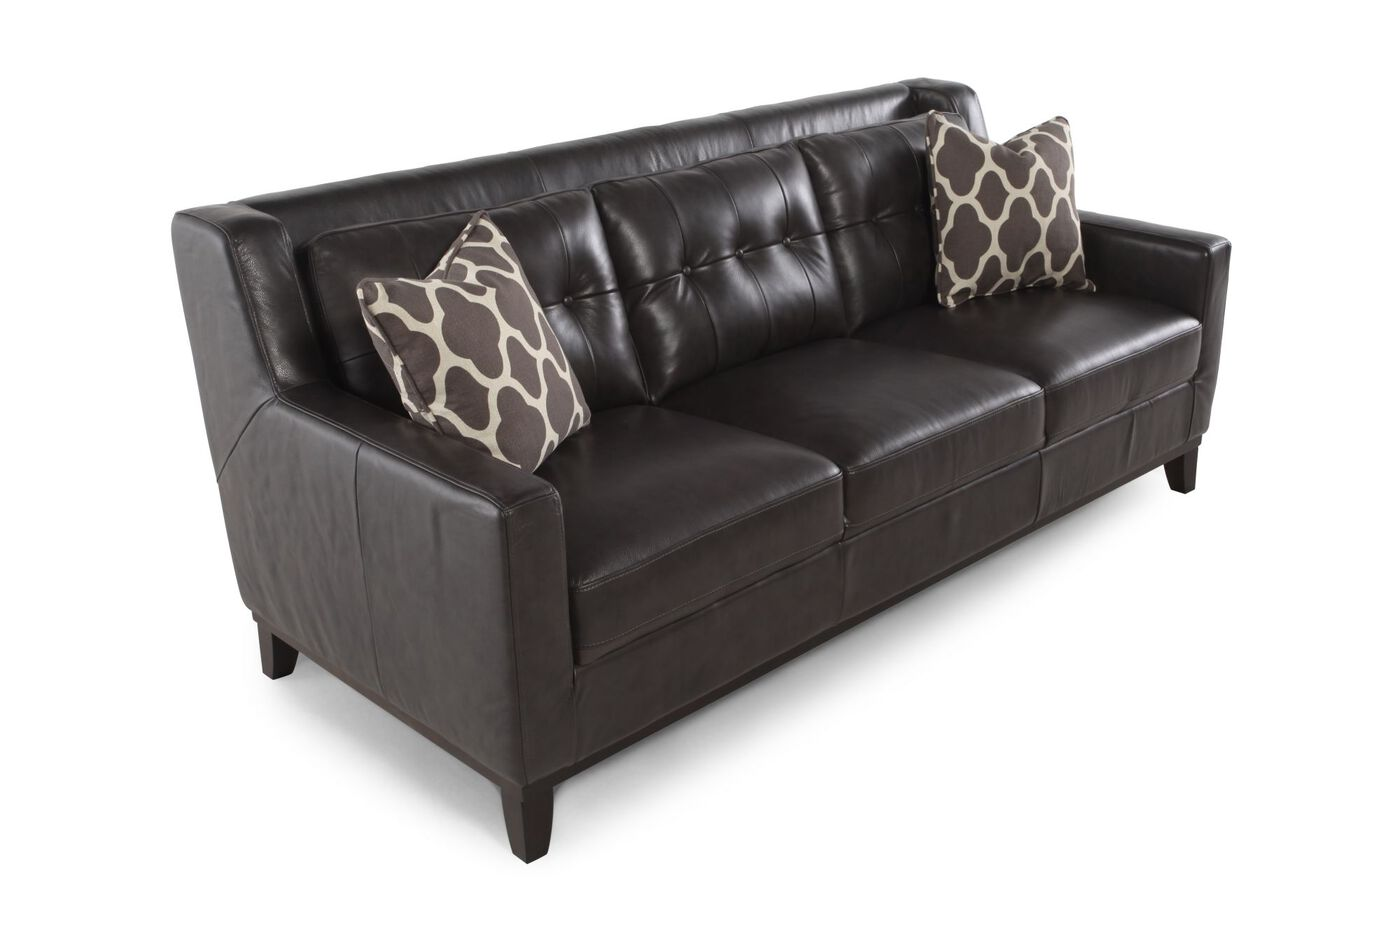 button tufted leather 80 sofa in dark gray mathis brothers furniture. Black Bedroom Furniture Sets. Home Design Ideas